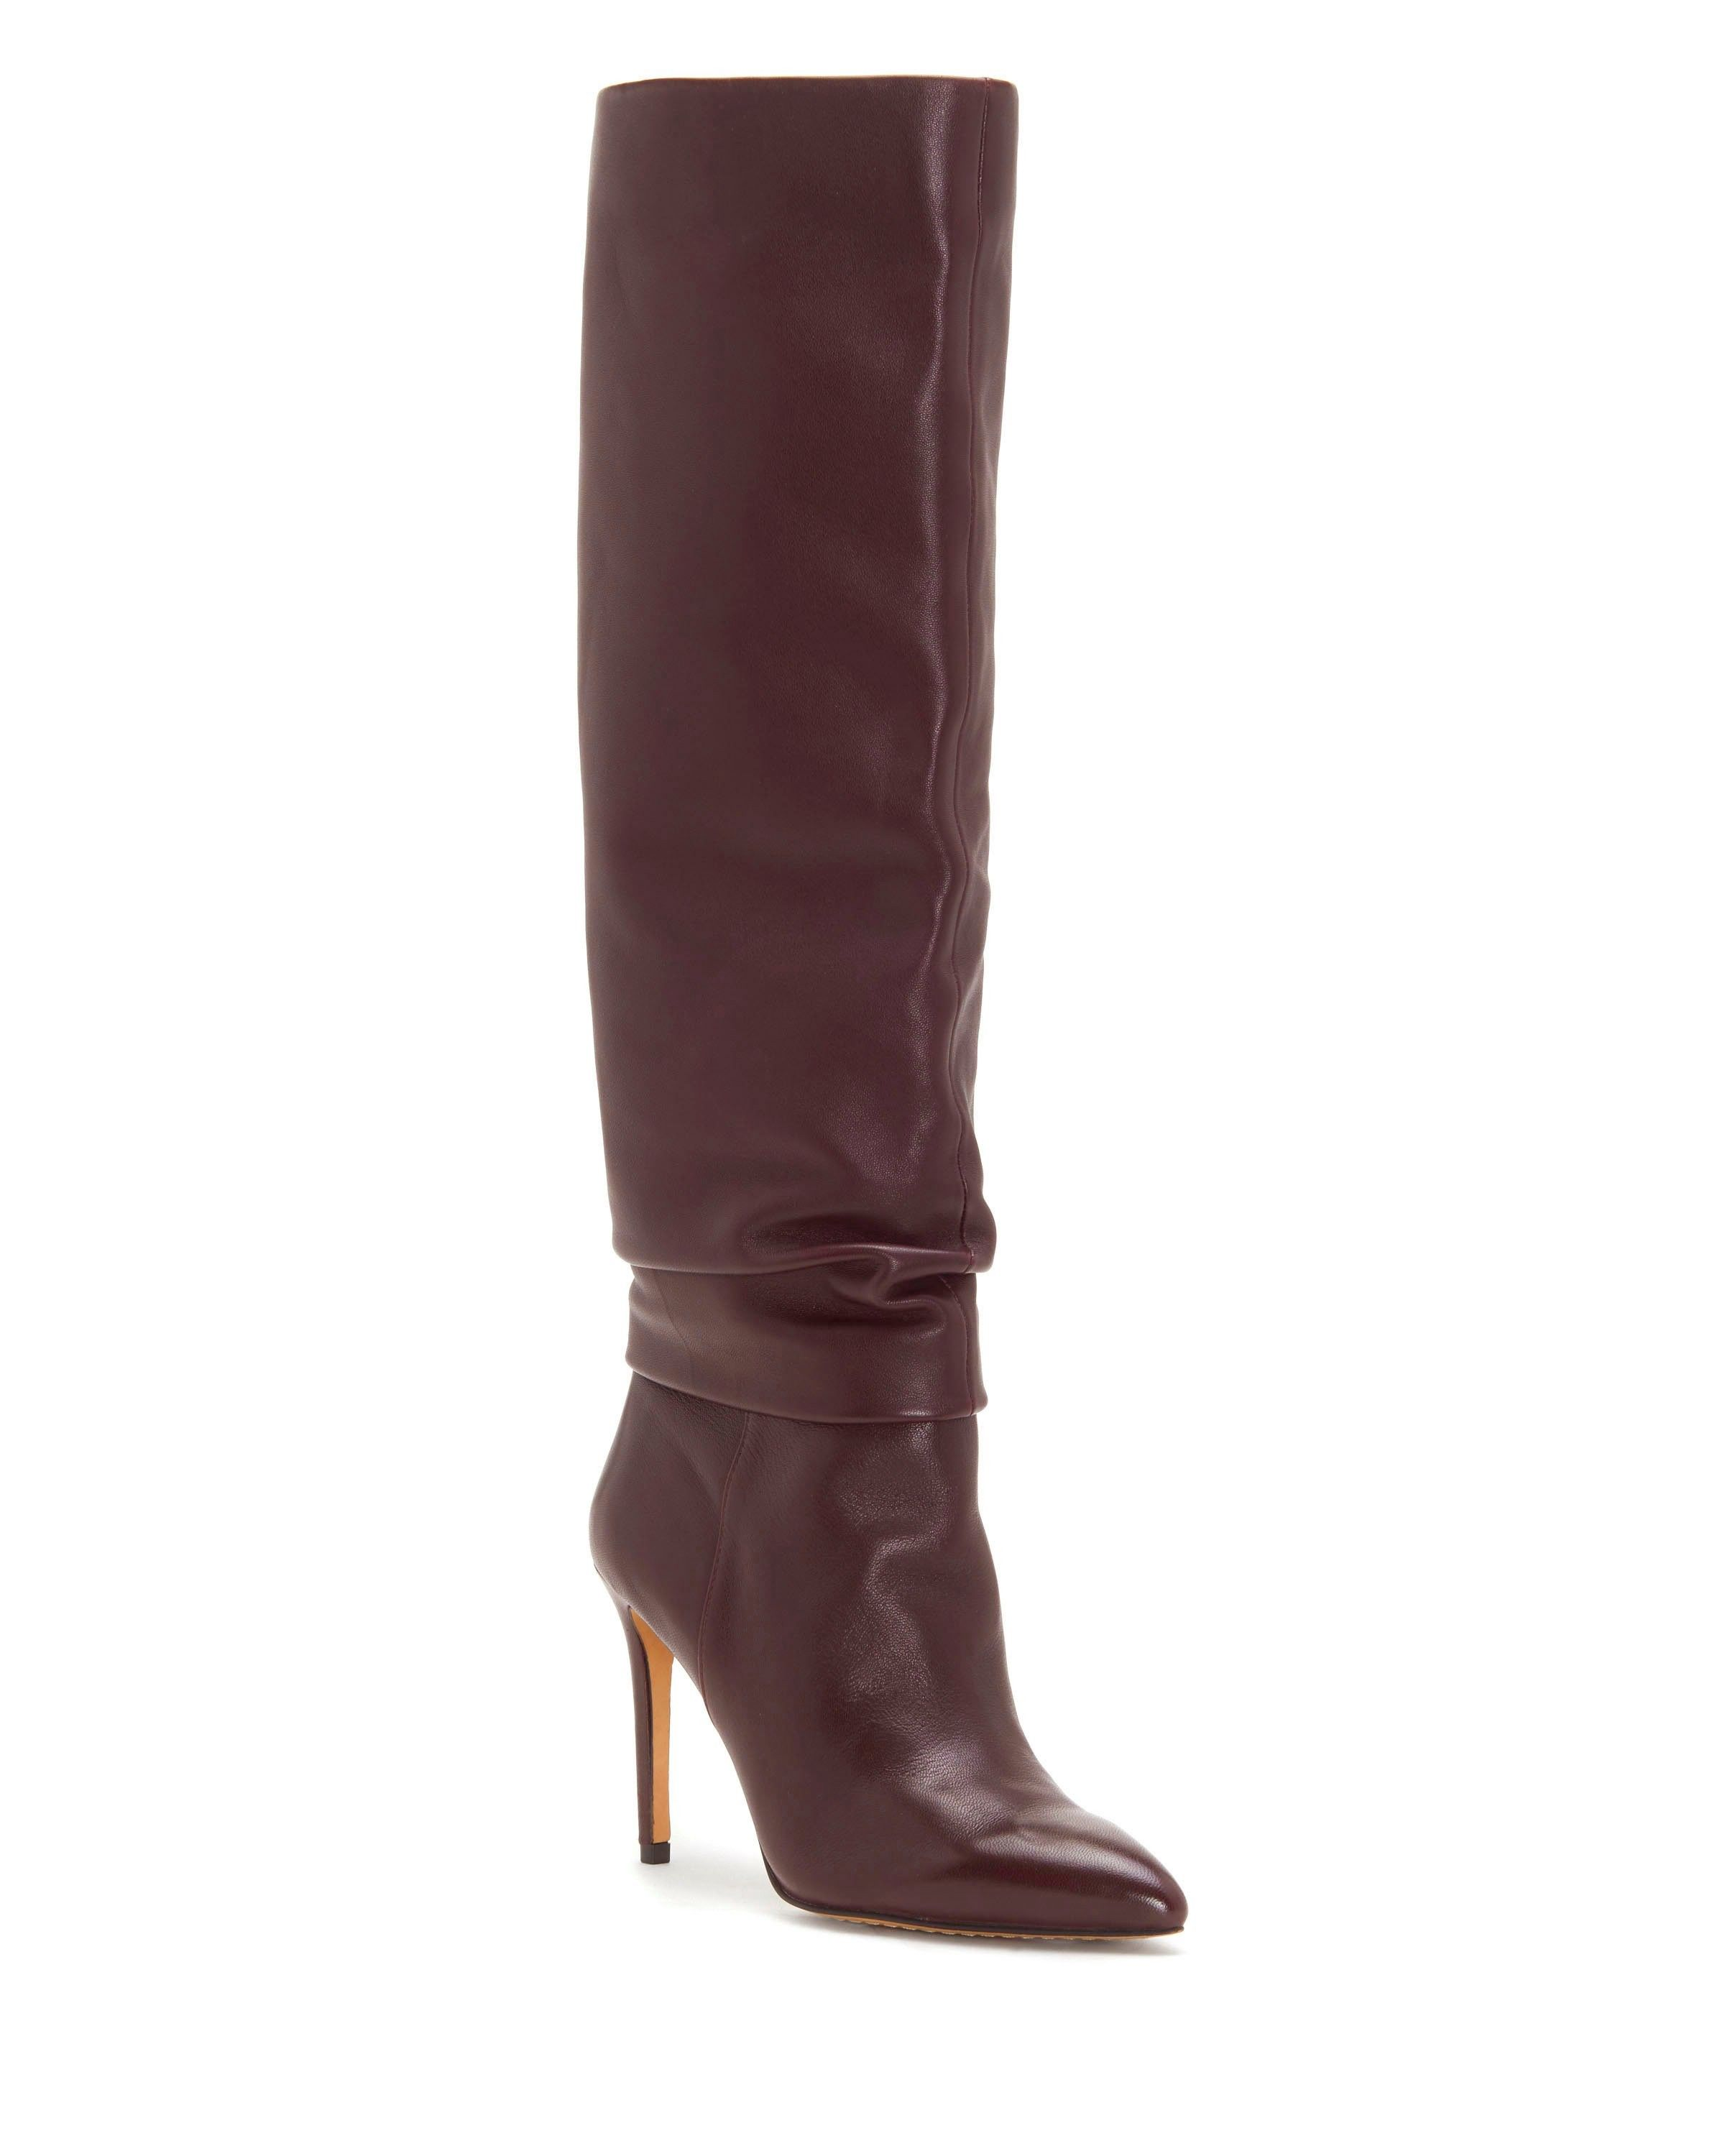 261582b211c01 Vince Camuto Kashiana – Stiletto Boot - 5 | Products | Boots, Heeled ...